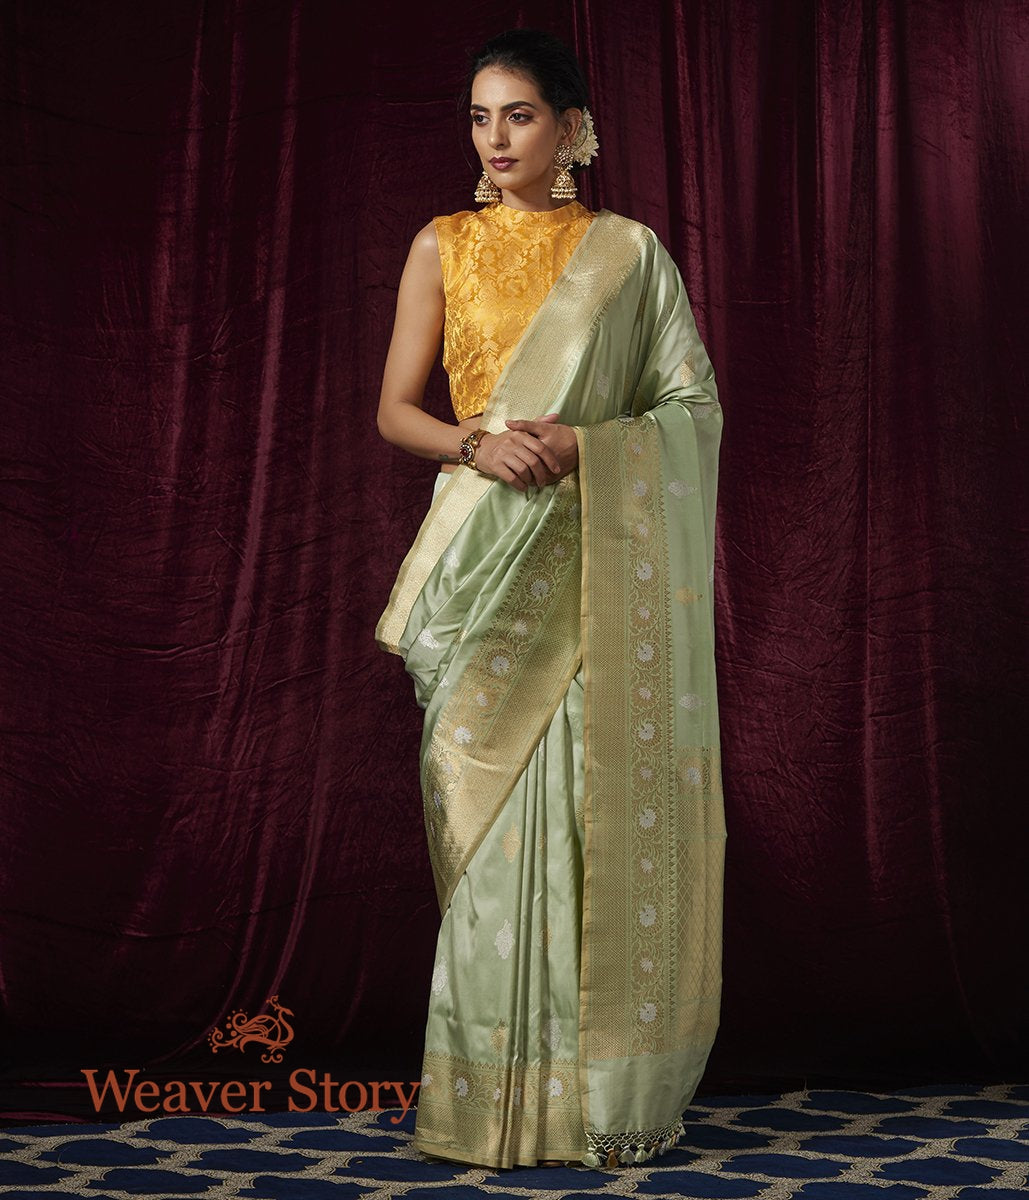 Handwoven Light Green Sona Rupa Kadhwa Booti Saree